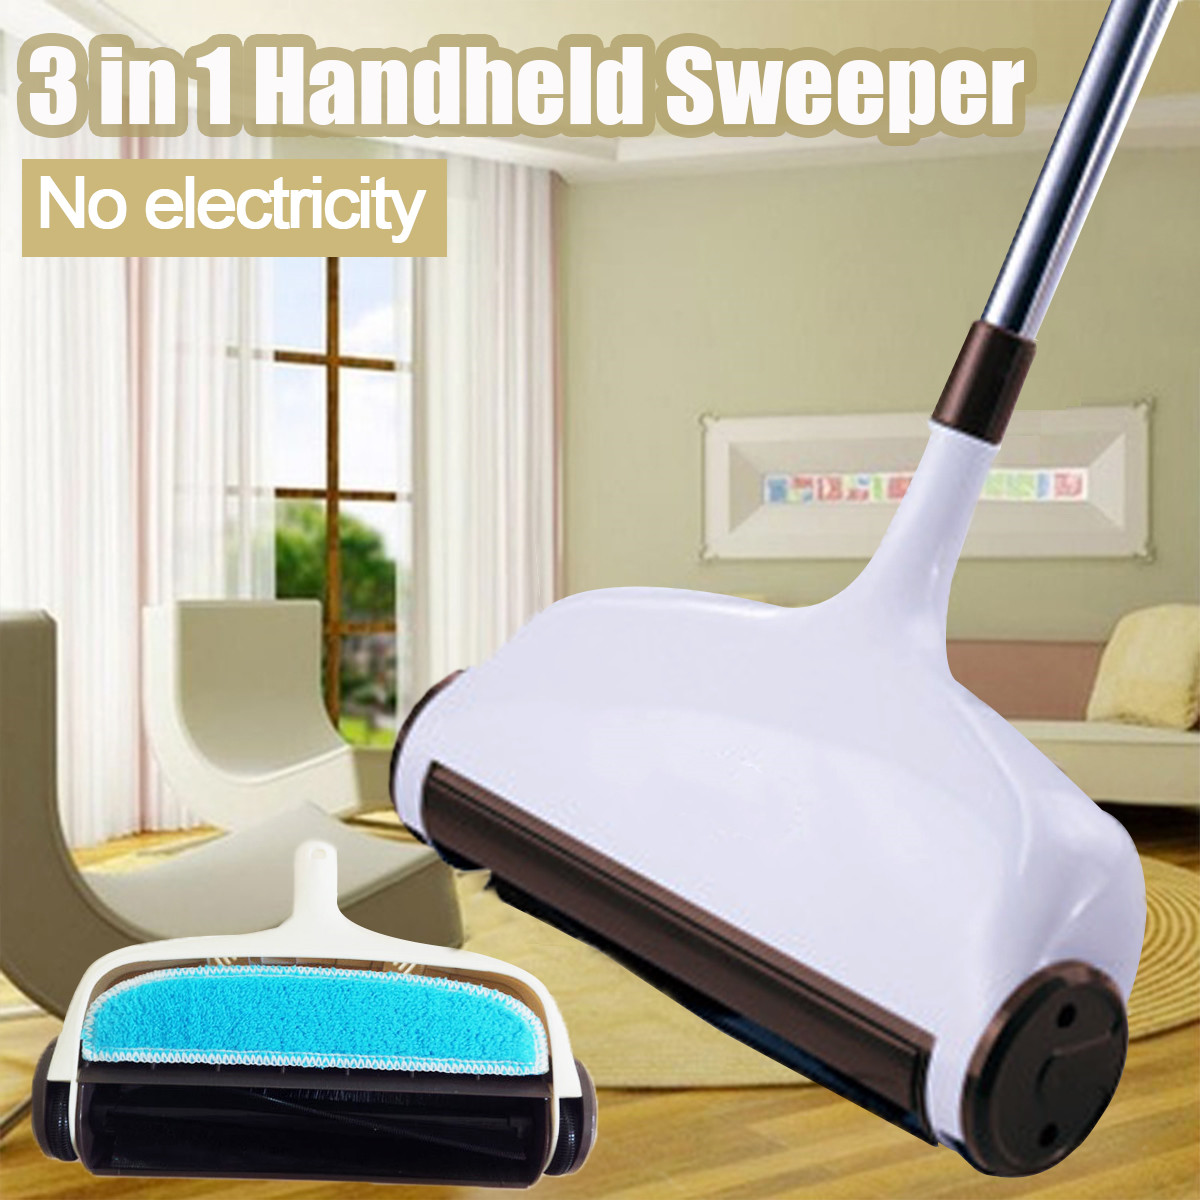 360 Degree Stainless Steel Hand Push Sweepers Sweeping Machine Push Type Magic Broom Sweepers Dustpan Household Cleaning Tools